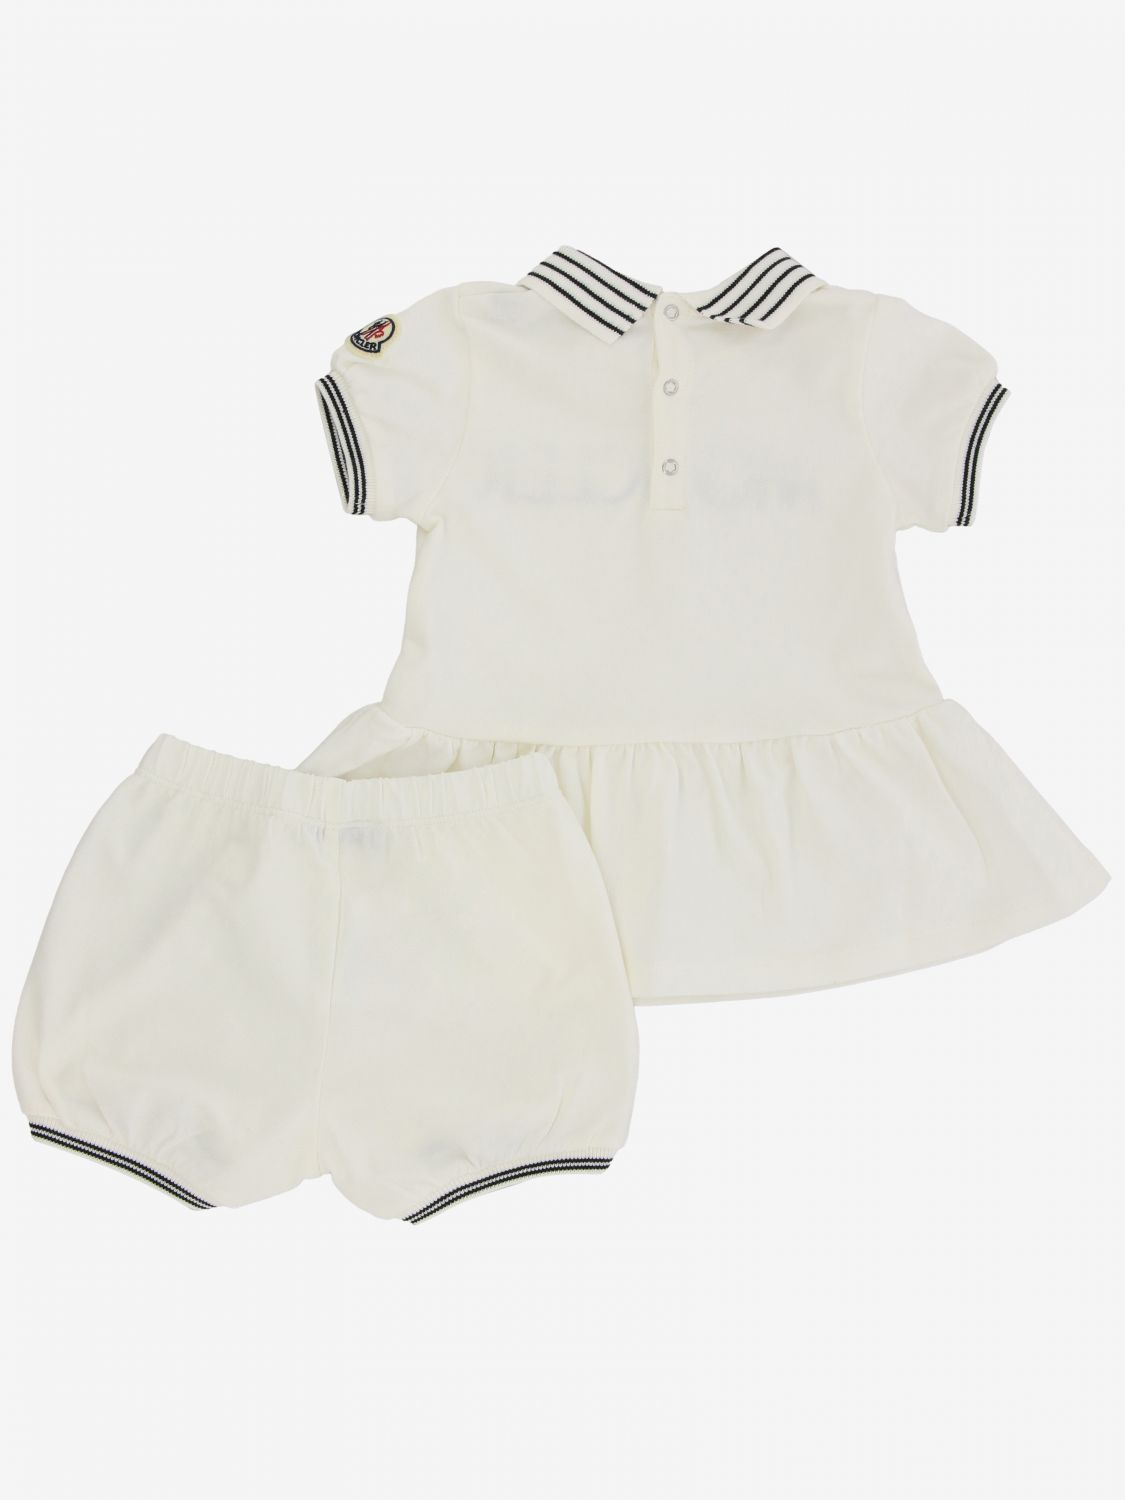 Moncler polo dress with shorts white 2